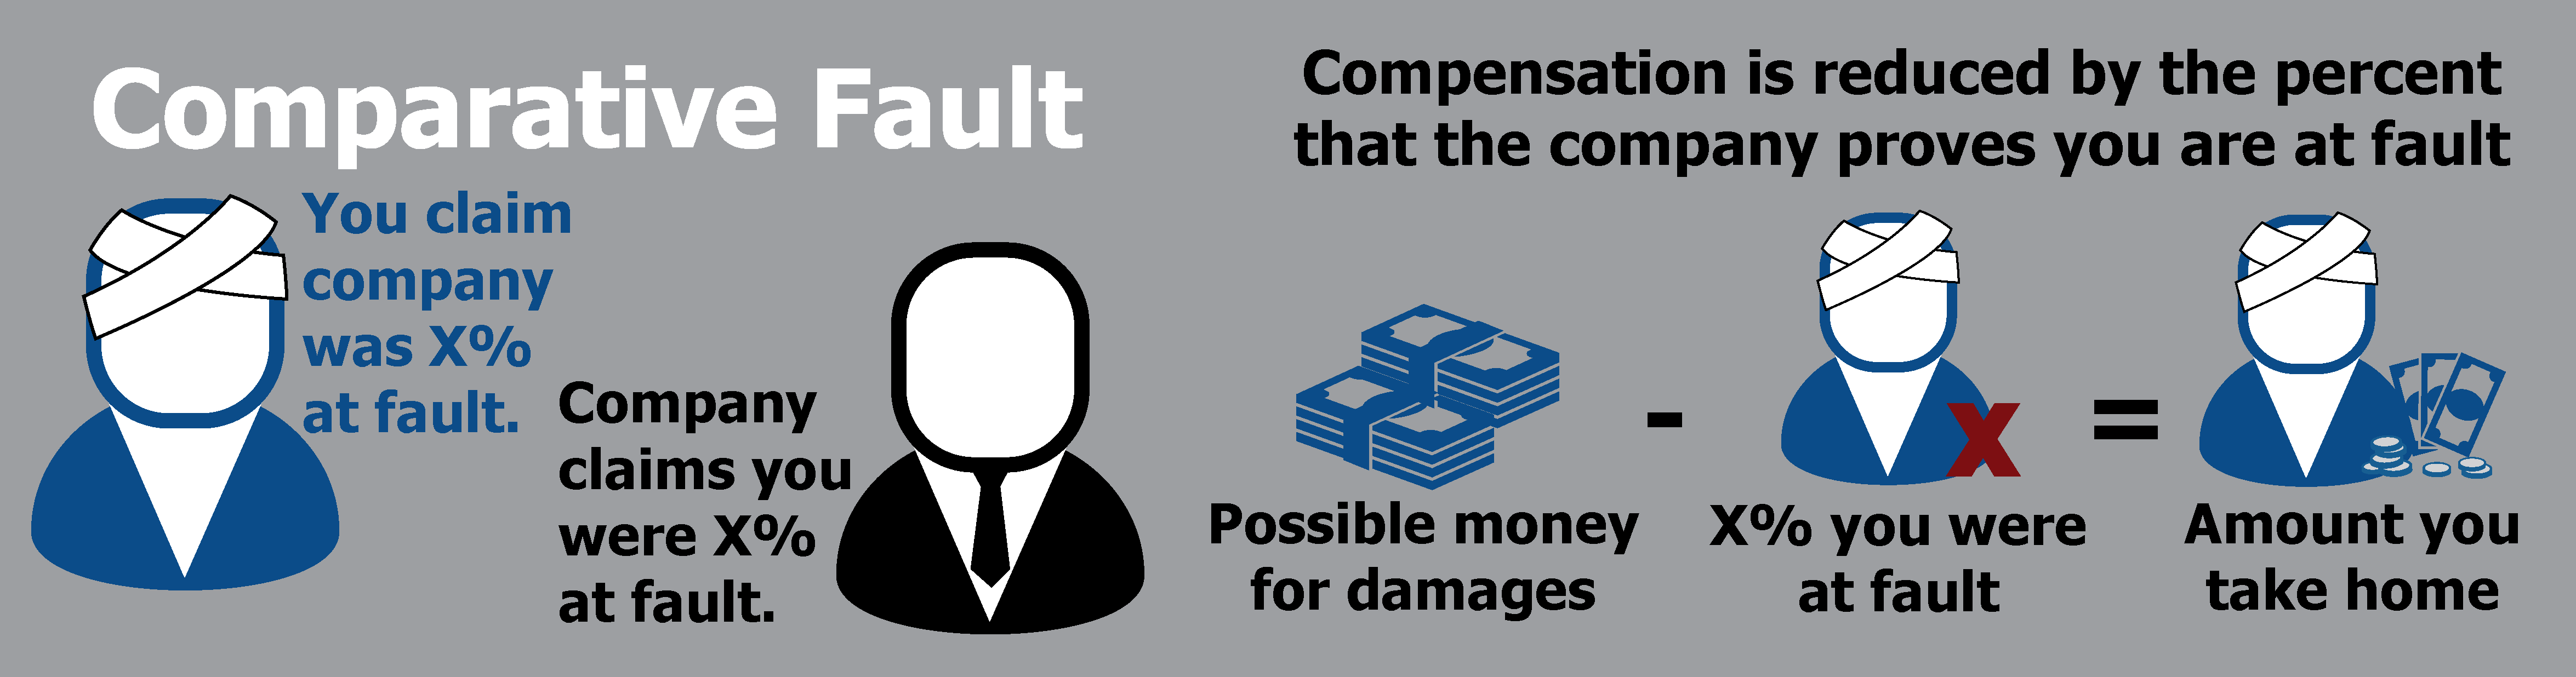 comparative fault infographic banner-04